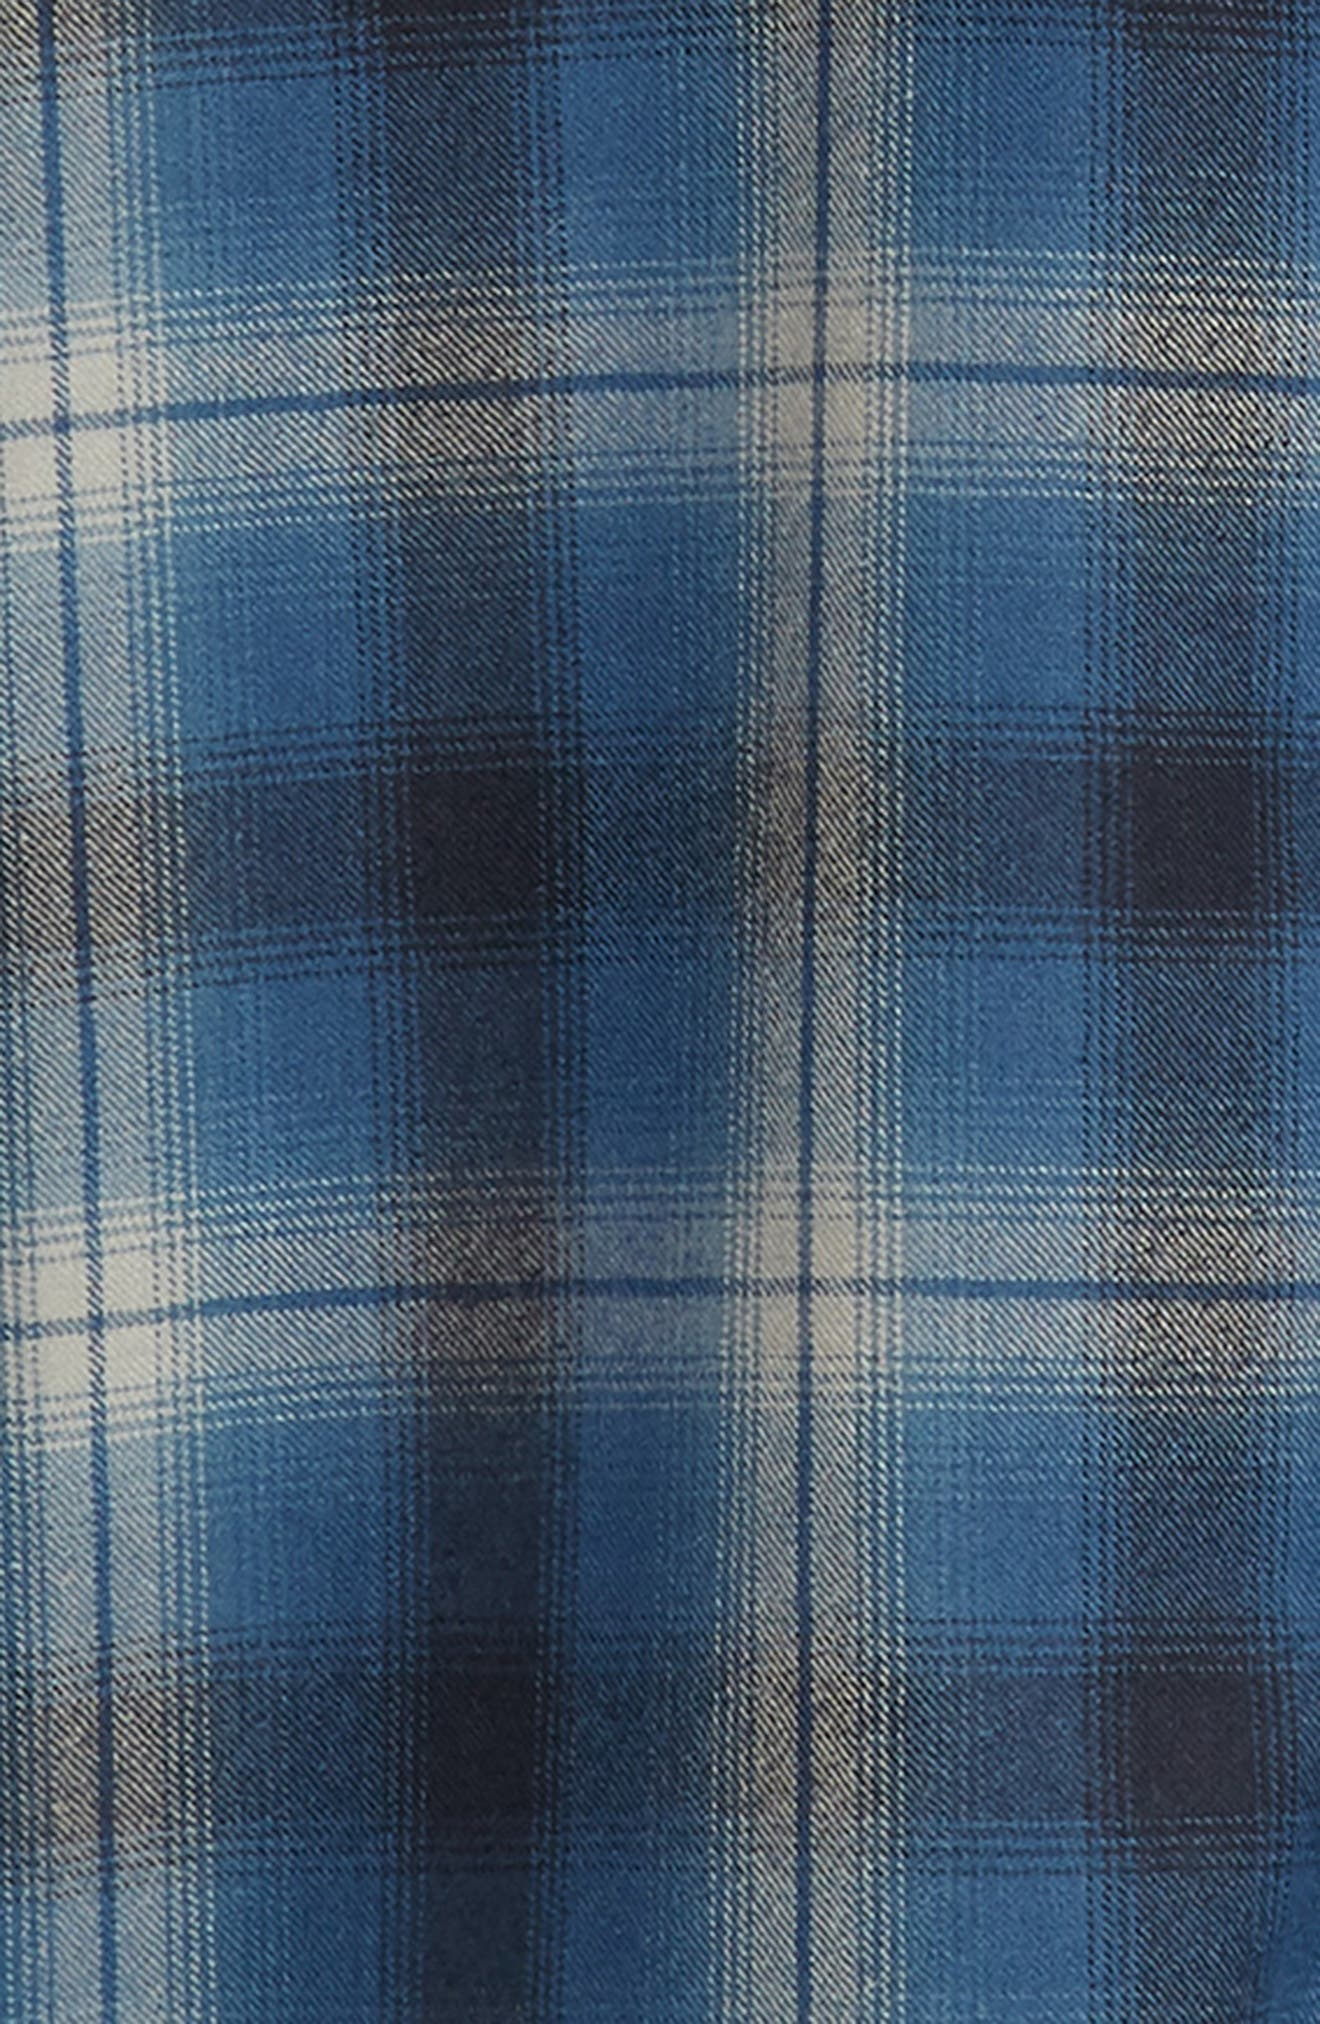 Zephyr Worsted Wool Flannel Shirt,                             Alternate thumbnail 6, color,                             BLUE OMBRE